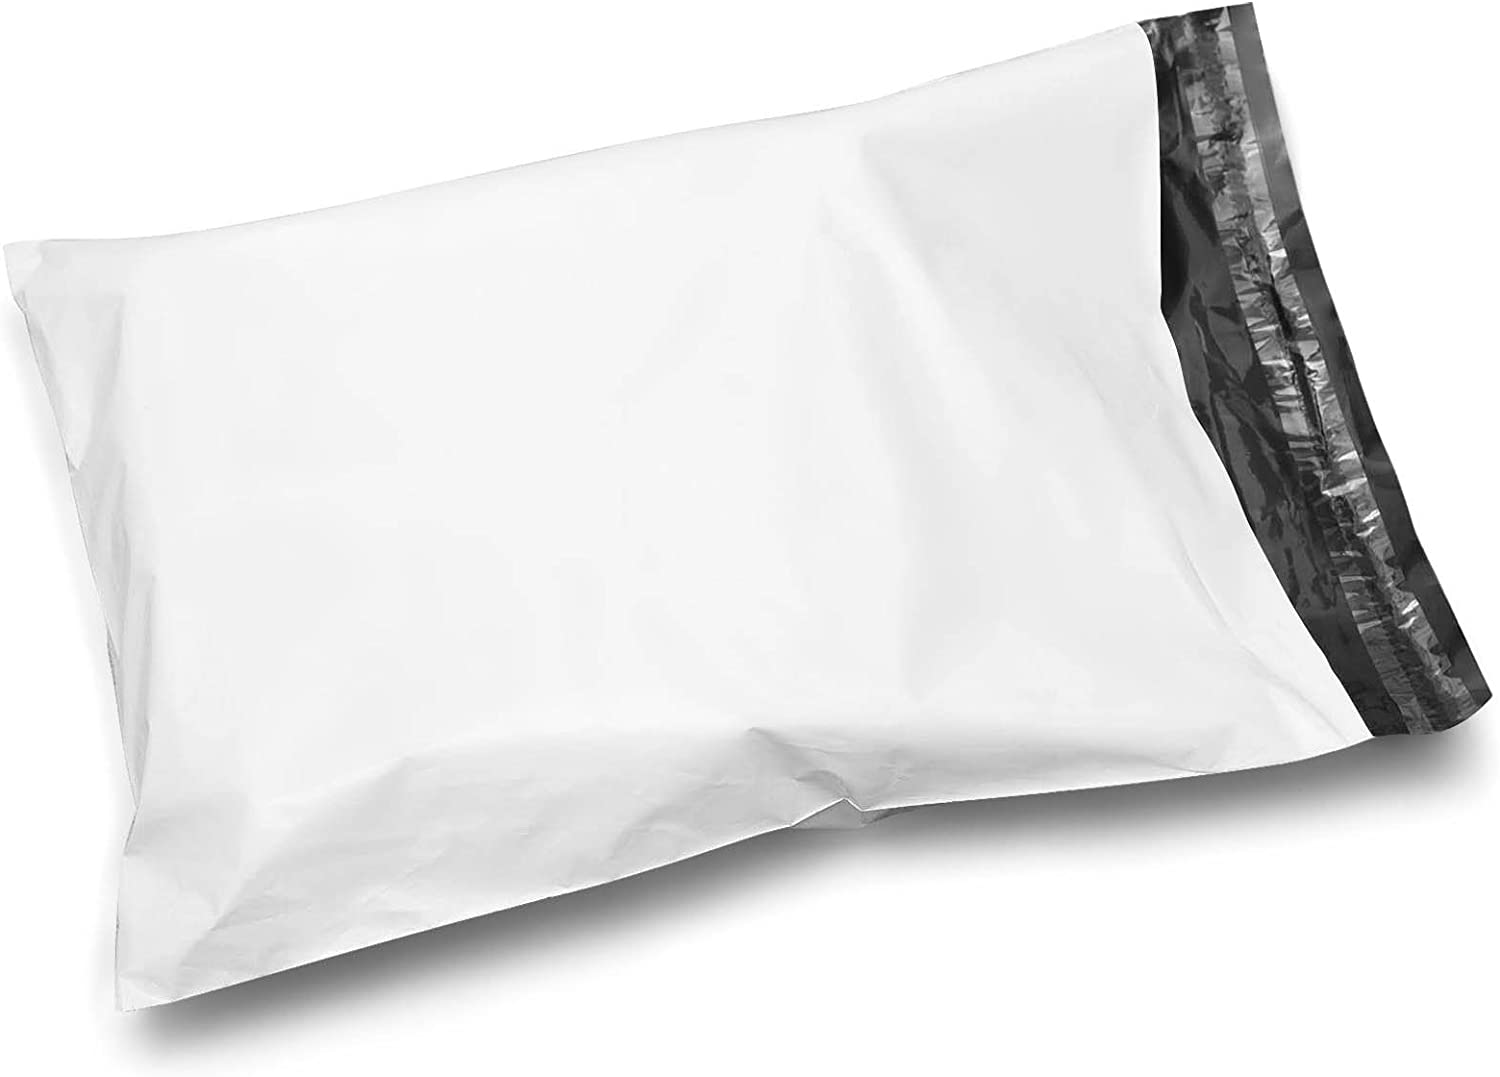 Shop4Mailers A surprise price is realized 19 x 24 Glossy White Mailer Poly Envelopes Mi Bag New life 3